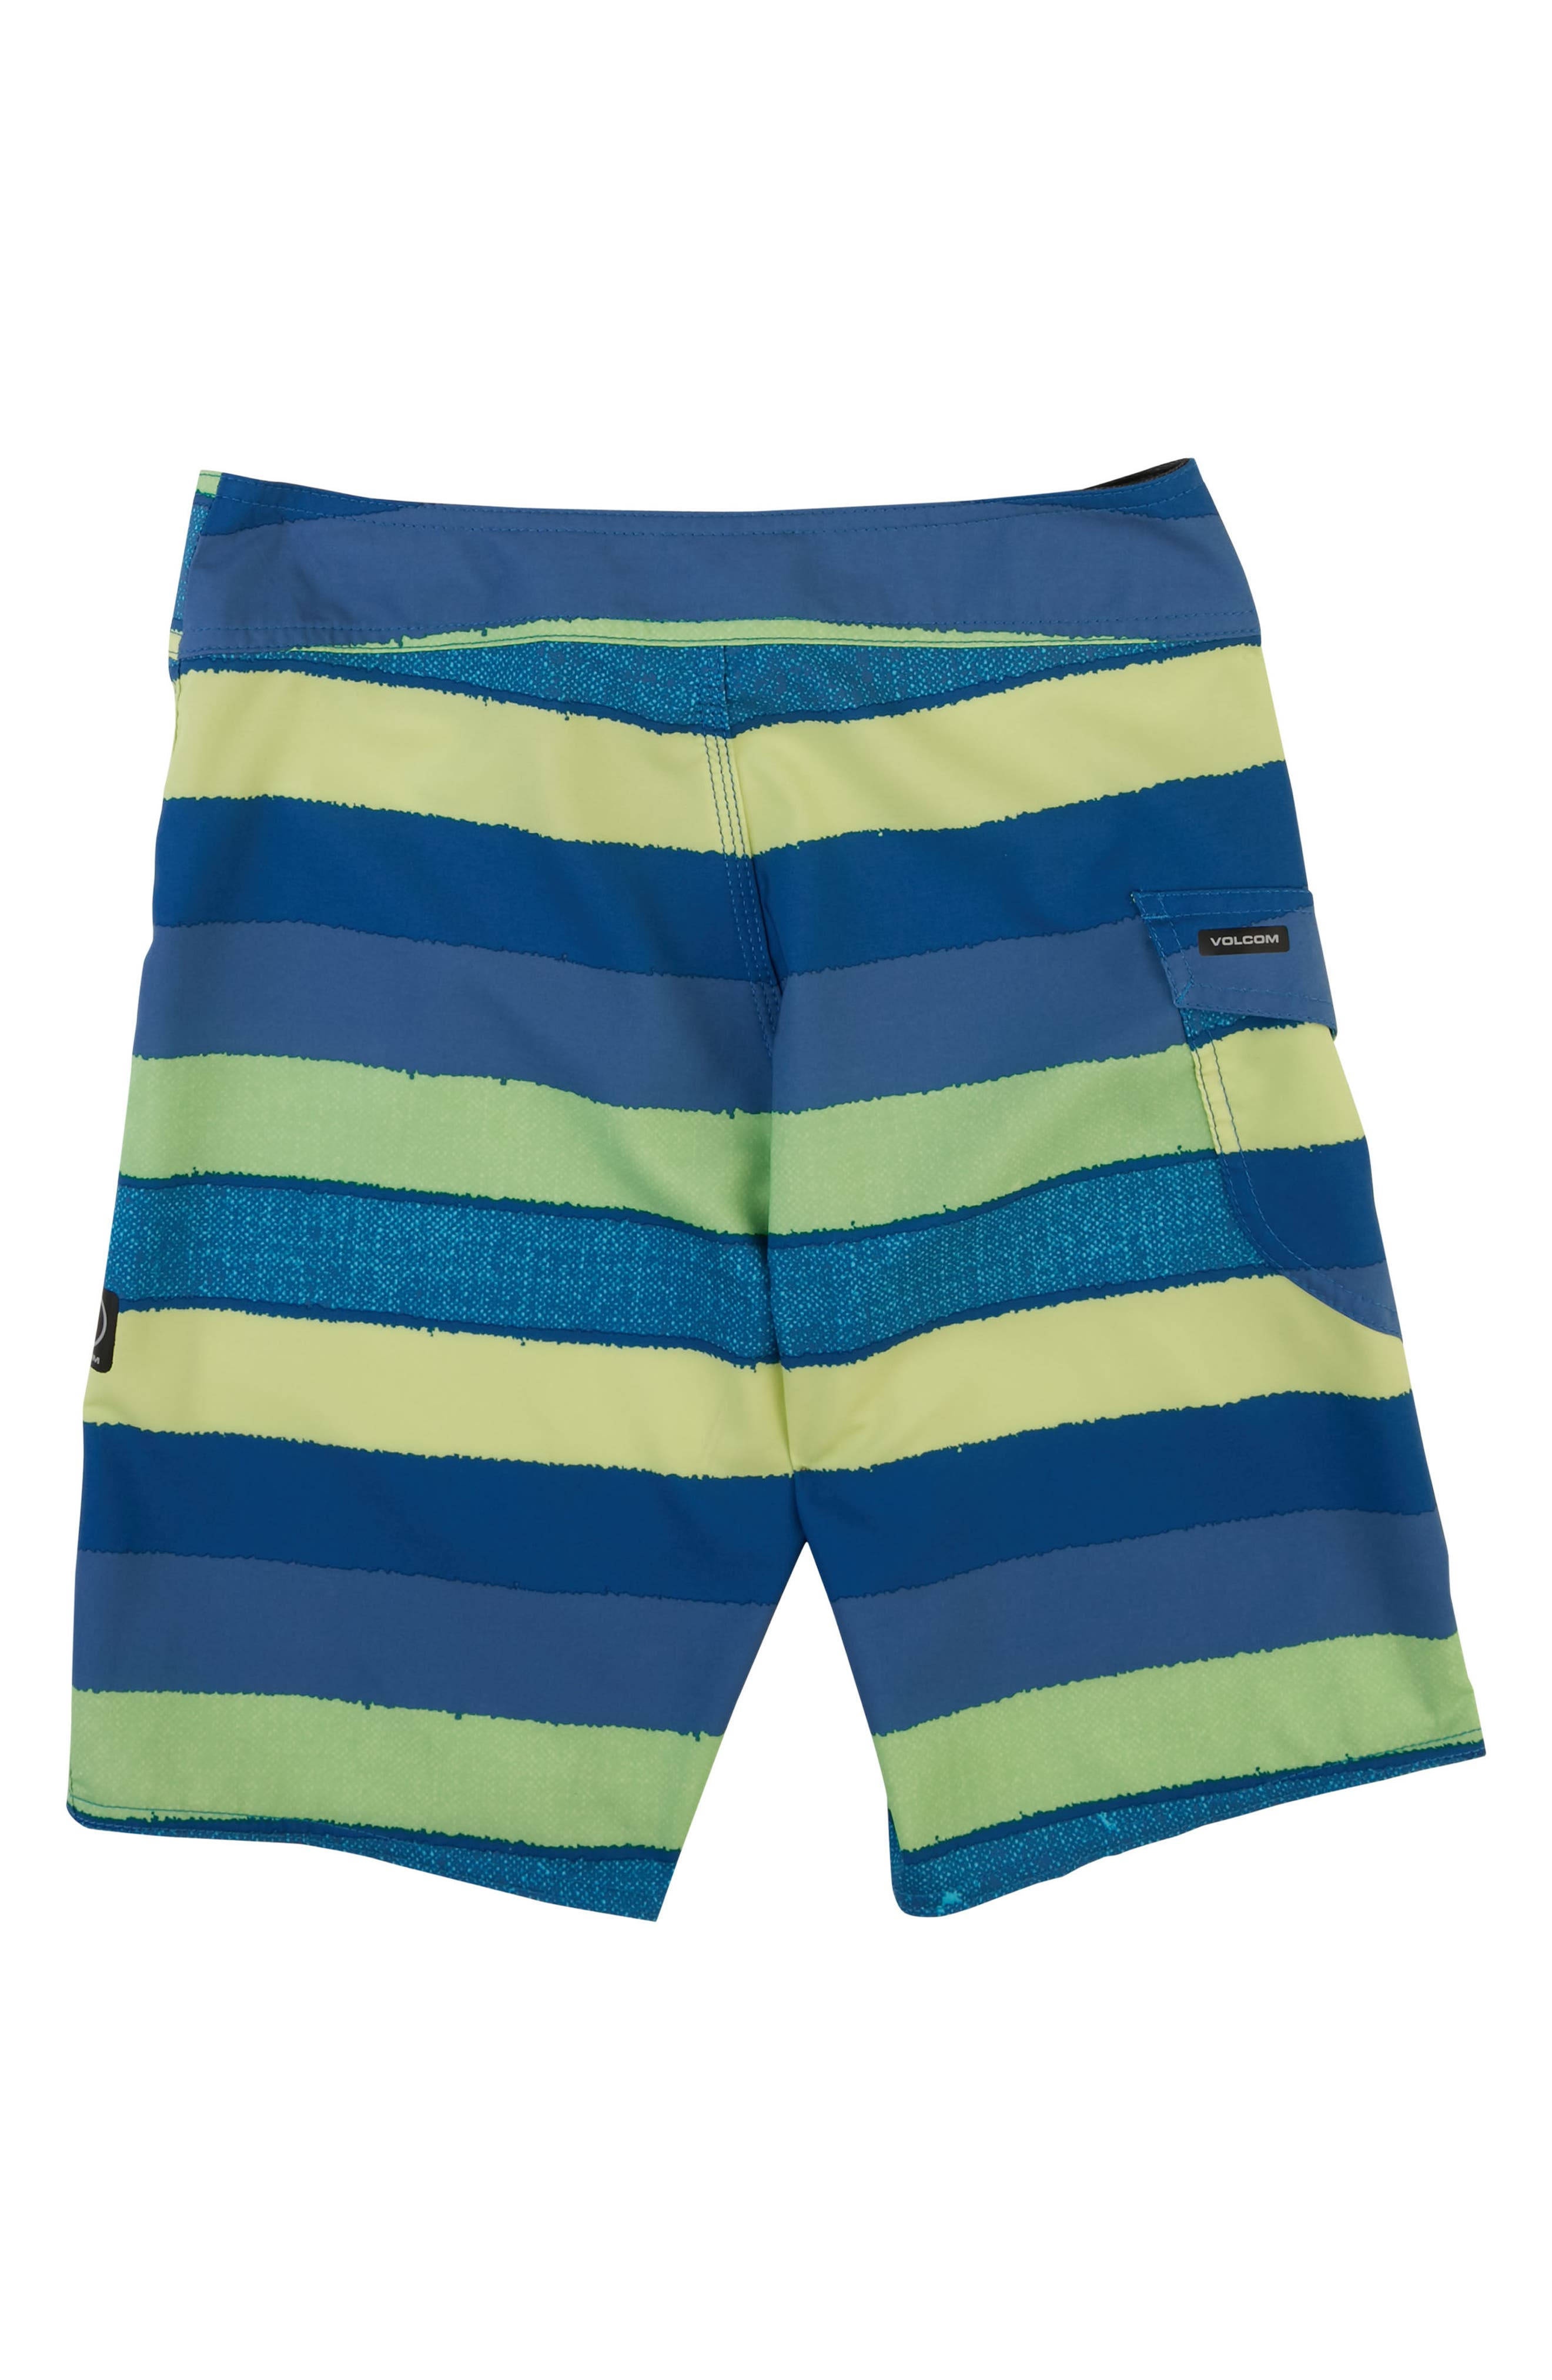 Magnetic Liney Mod Board Shorts,                             Alternate thumbnail 2, color,                             313